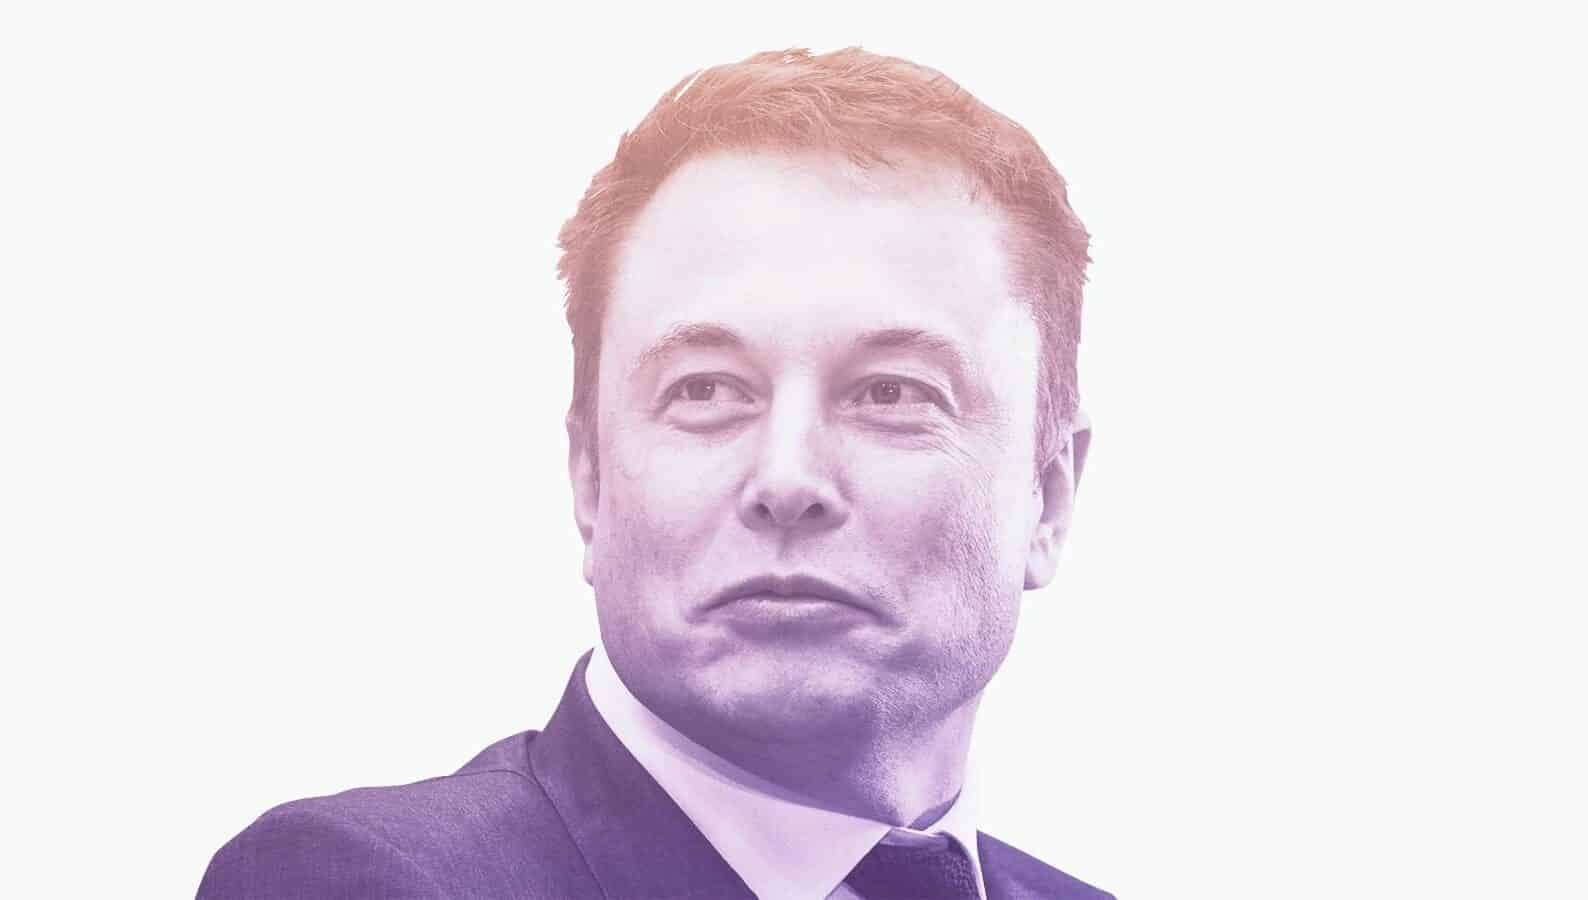 Elon Musk Net Worth [2021] Age, Height, Biography, & More